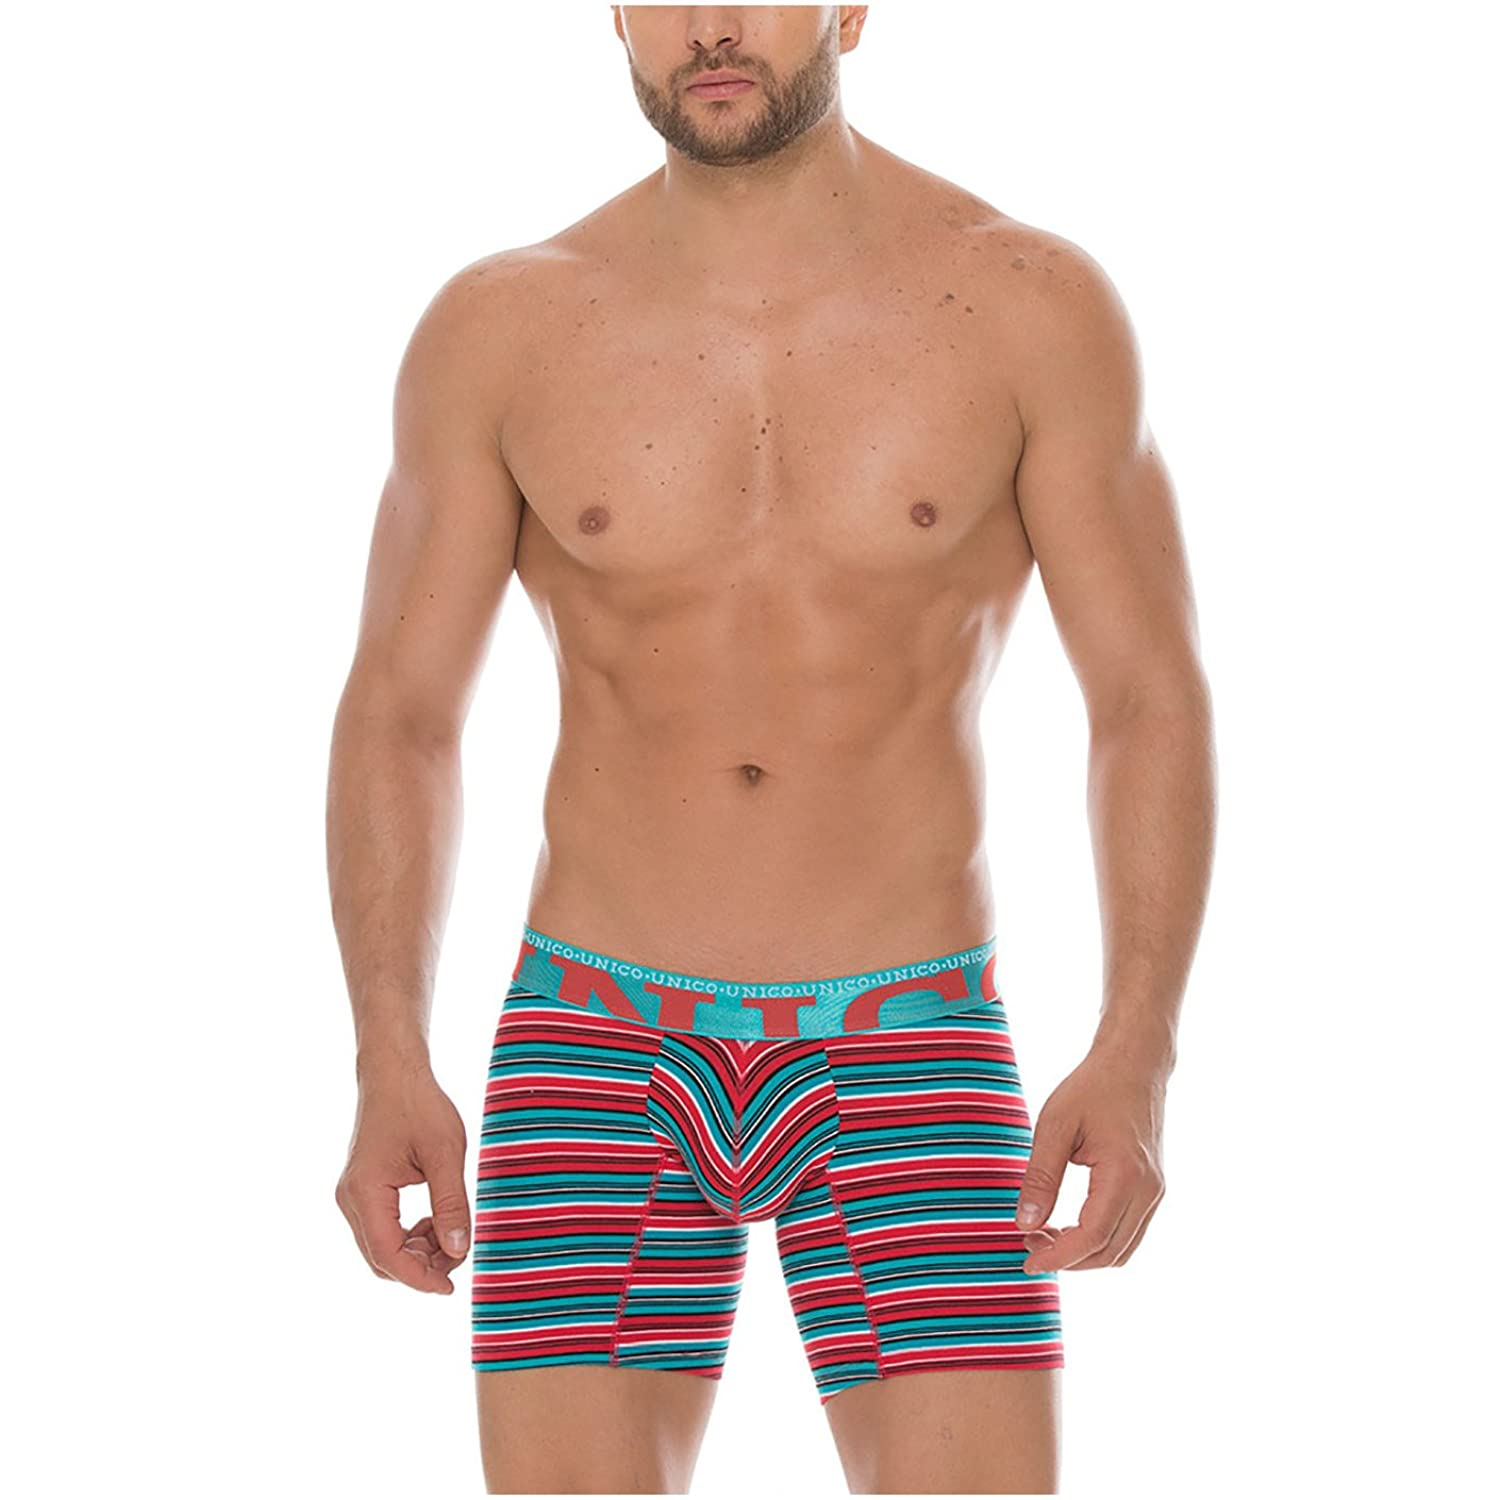 Mundo Unico Men Trunk Cotton Colombian Underwear Ropa Interior Colombiana at Amazon Mens Clothing store: